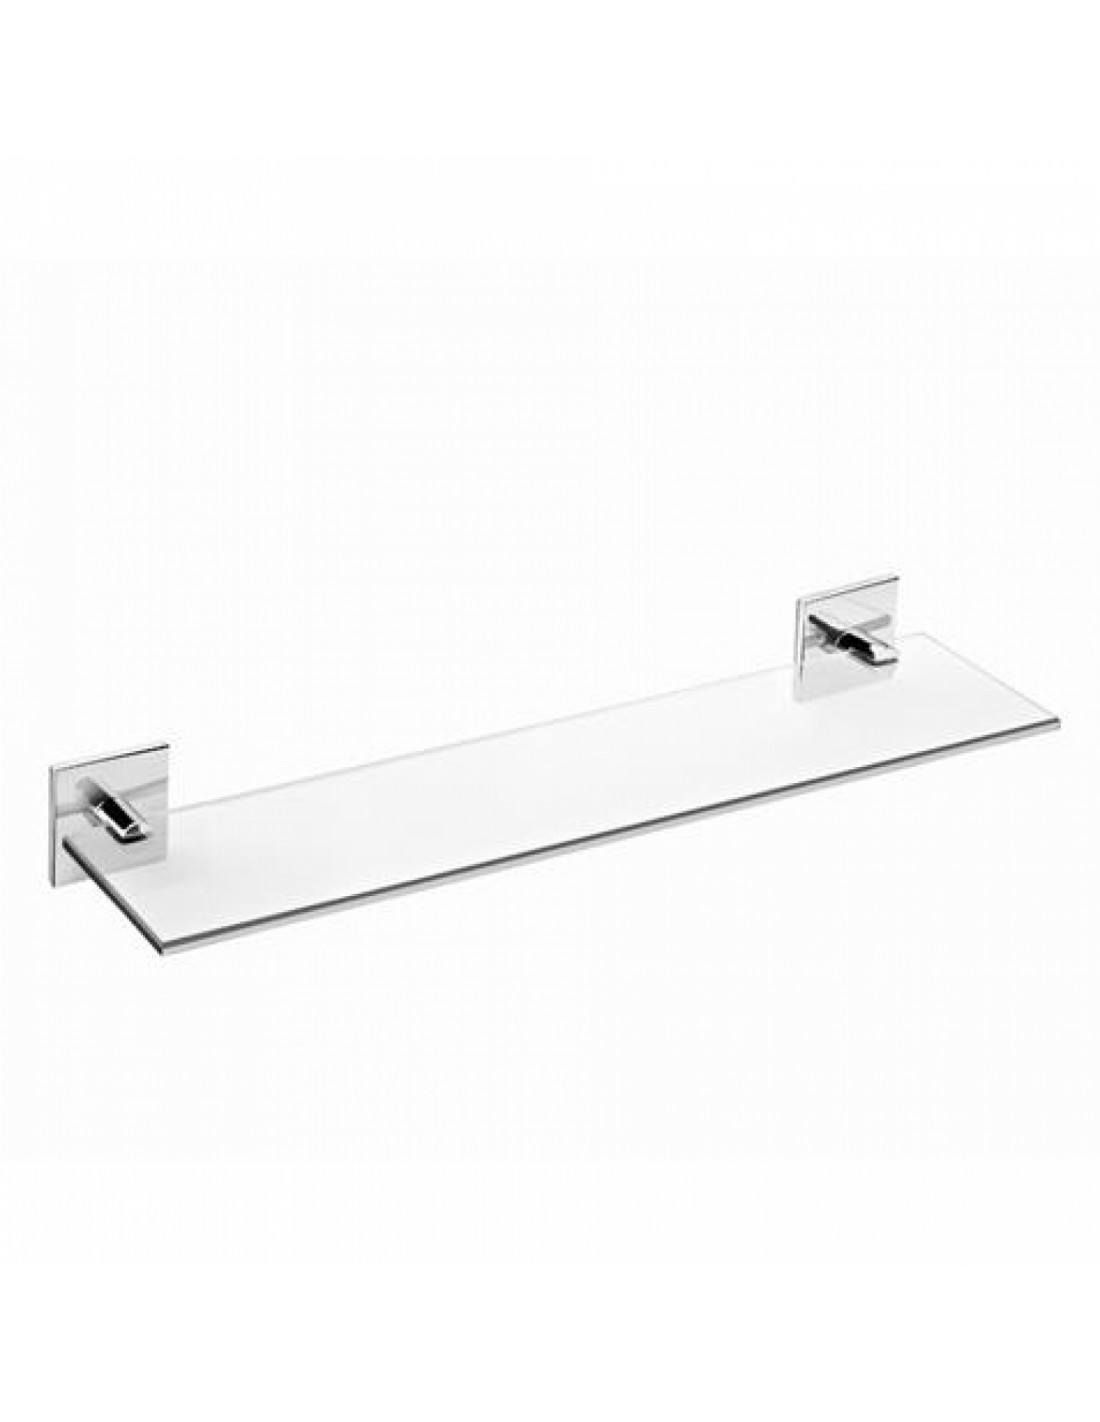 Tablette salle de bain en verre 40 cm coller duo square for Tablette salle de bain sans percer